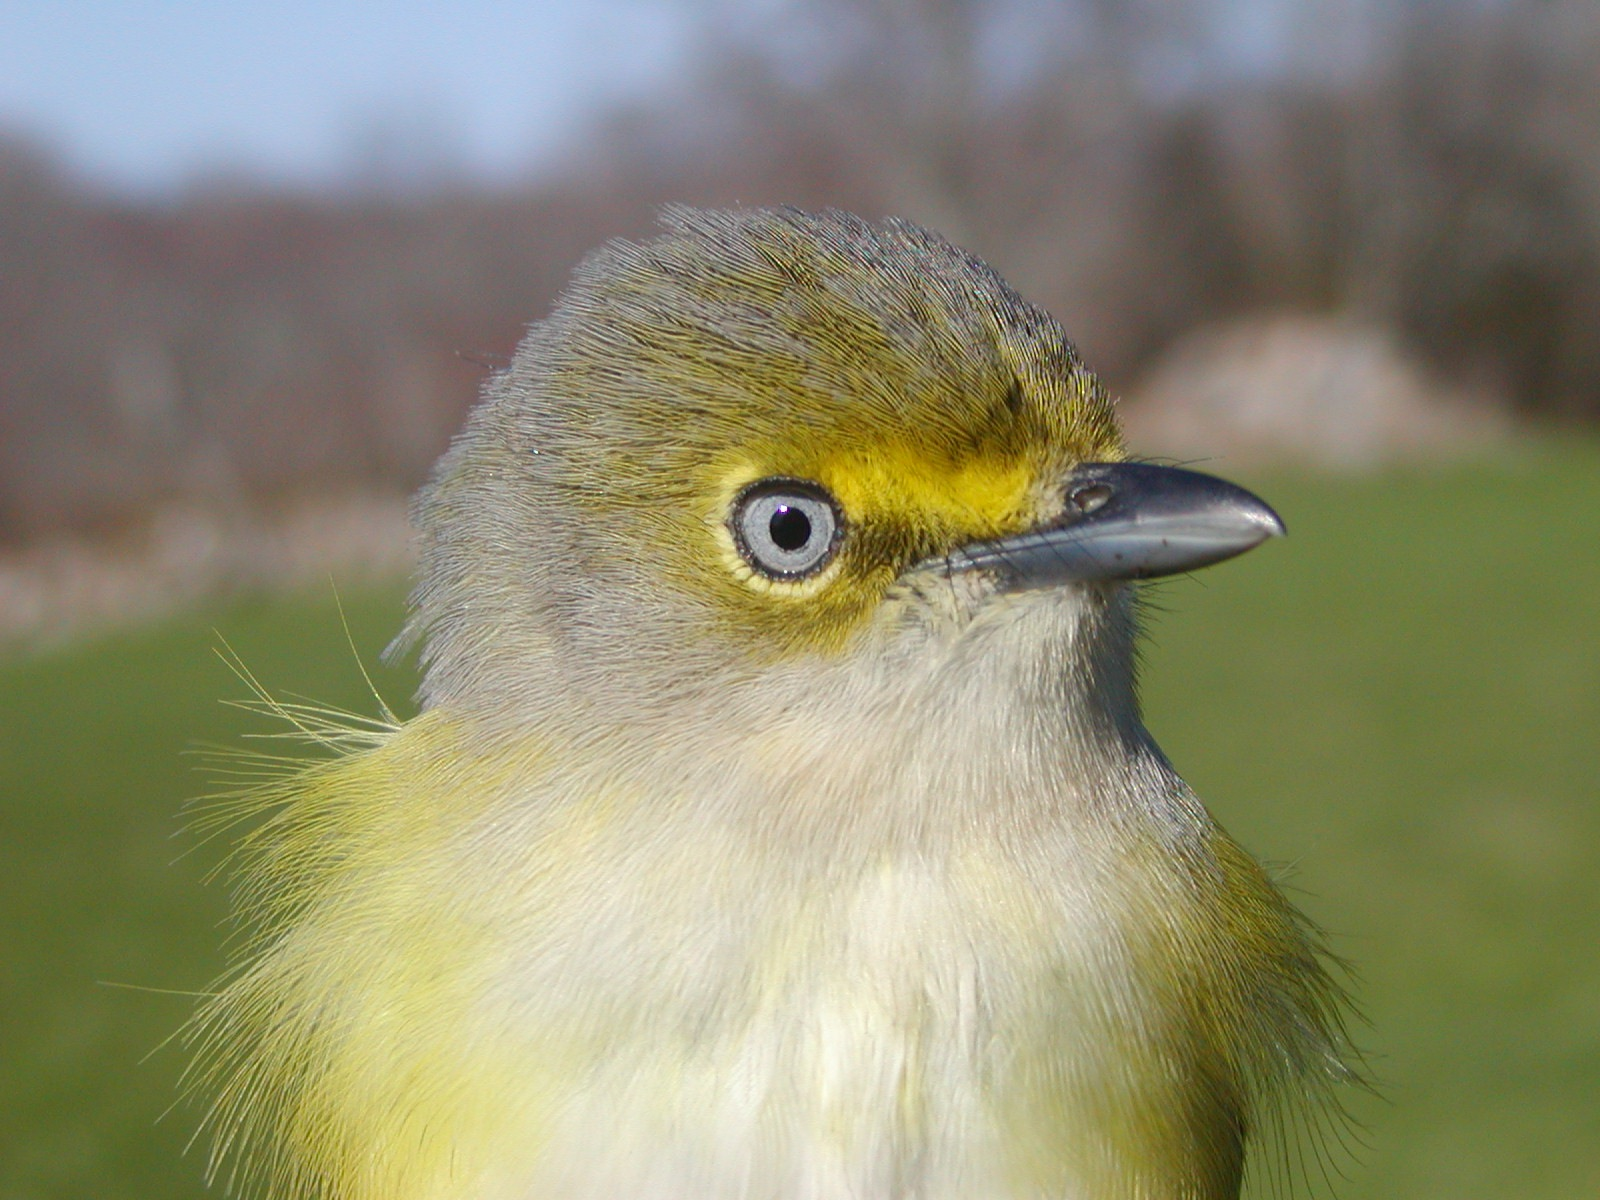 The white eye of the White-eyed vireo gives this bird a demented look. But its unusual eye color makes this bird an easy one to identify. This species of vireo nests on Block Island, and its winter migration may take it as far south as Nicaragua.